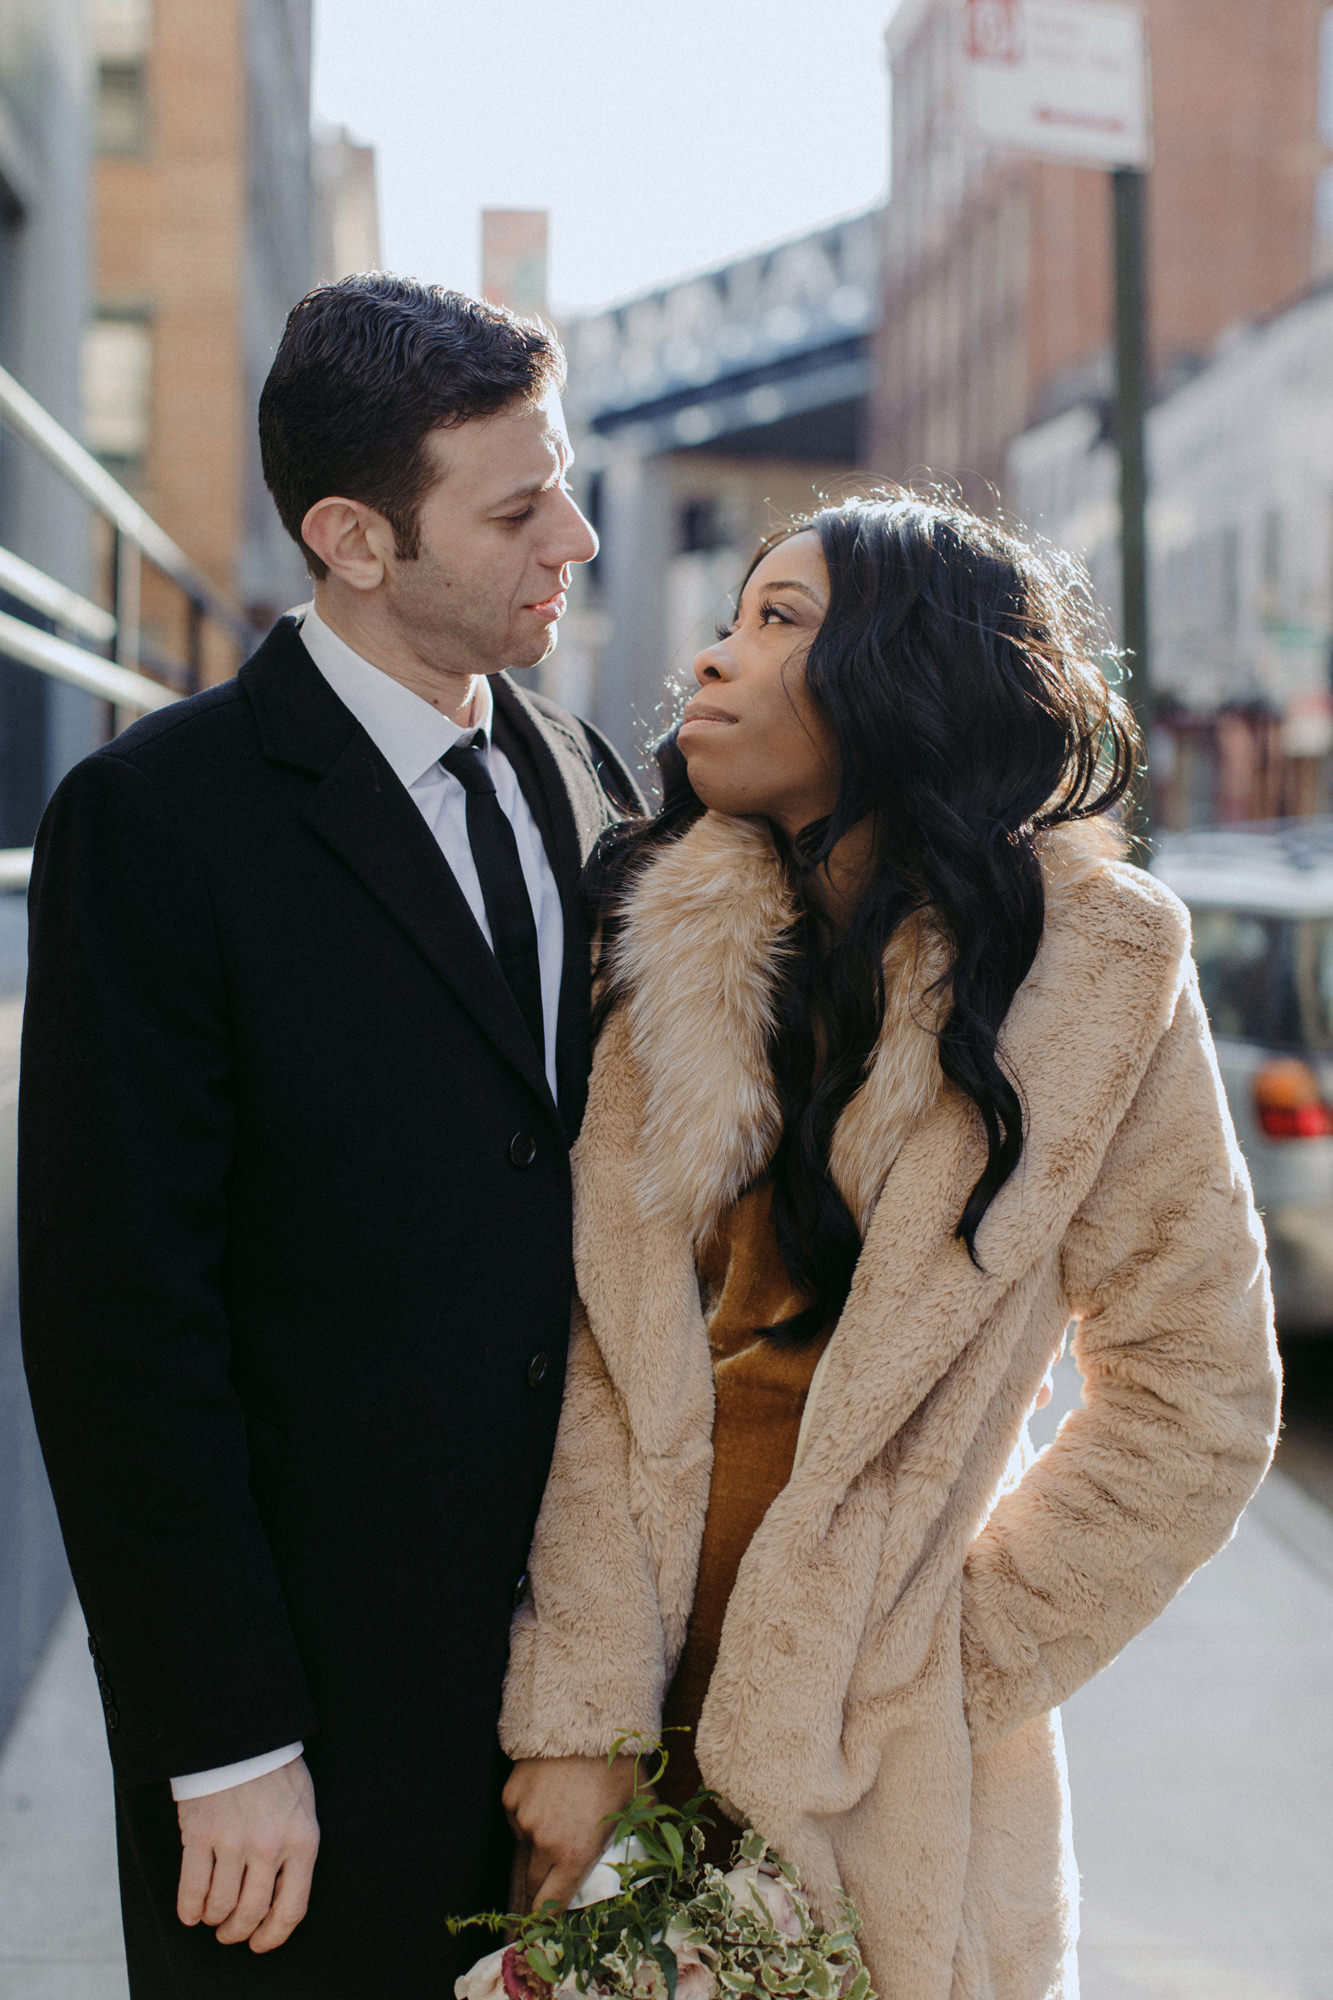 BROOKLYN_ELOPEMENT_SAMMBLAKE_NDE_186.jpg